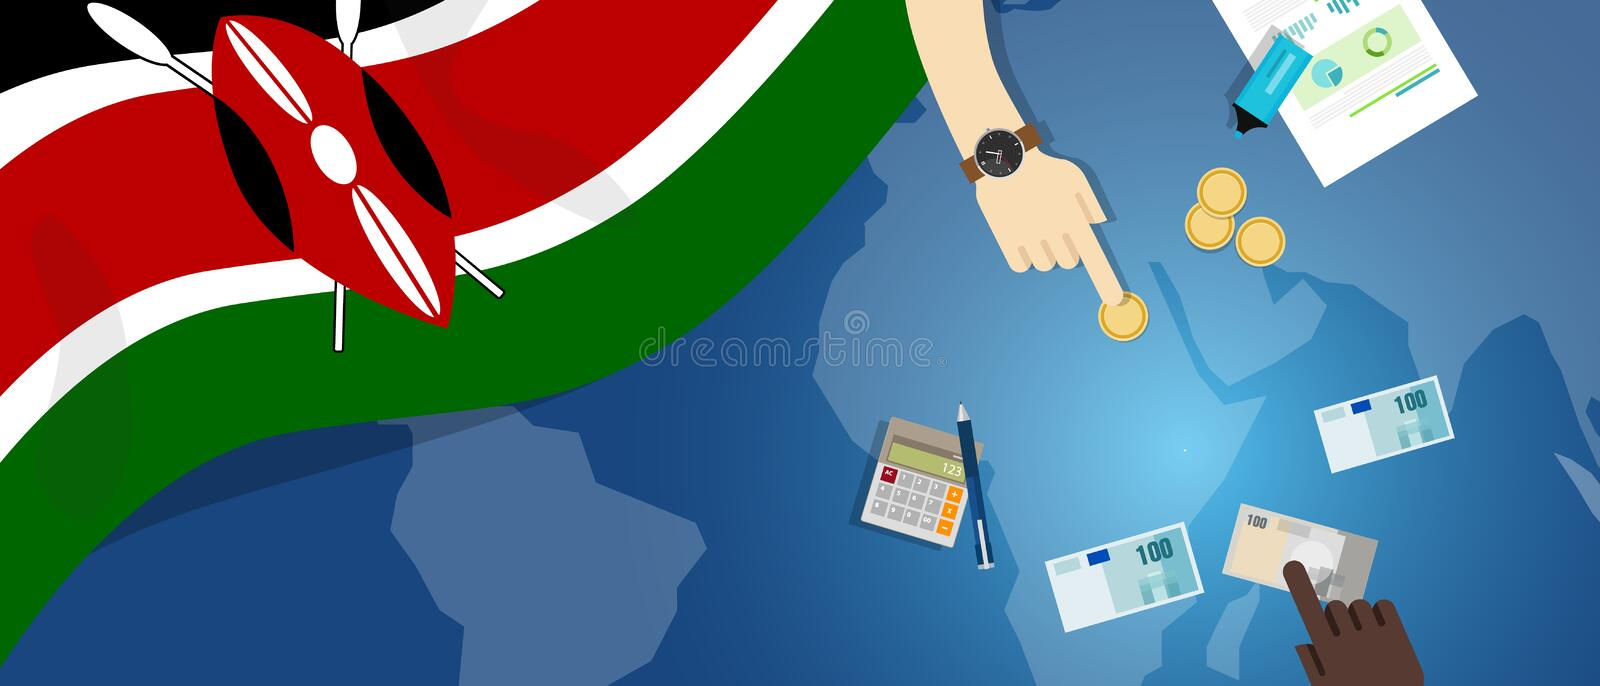 Kenya economy fiscal money trade concept illustration of financial banking budget with flag map and currency. Vector stock illustration